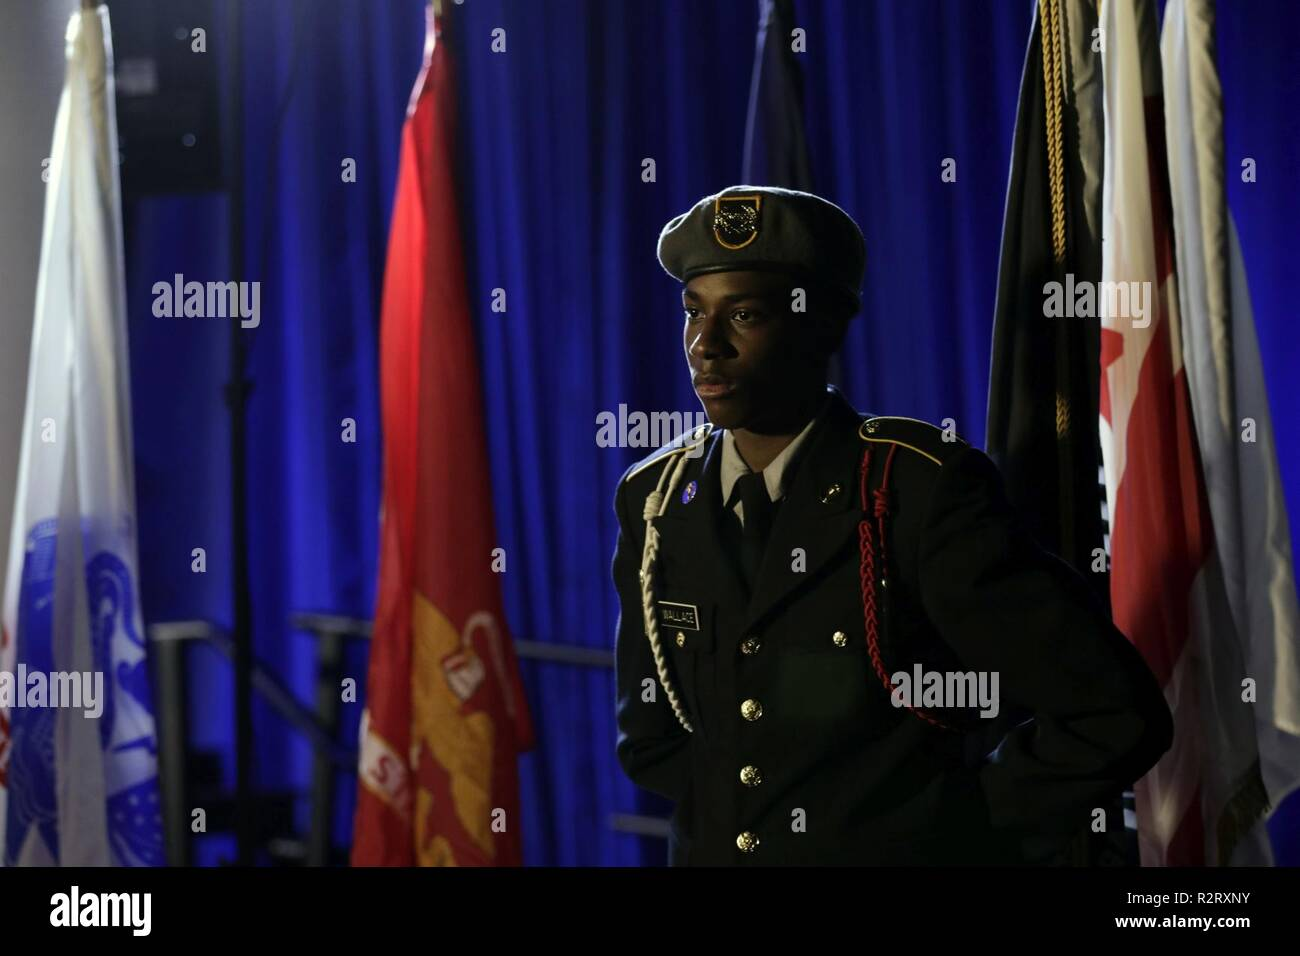 An Army JROTC cadet stands guard at the Missing Man Table during the U.S. Department of Housing and Urban Development's 2018 Veteran's Day ceremony, hosted by the Honorable Dr. Ben Carson, secretary of HUD, on Nov. 8, in Washington, D.C. The ceremony commemorated the centennial of Armistice Day and celebrated the Veterans working at HUD. Stock Photo